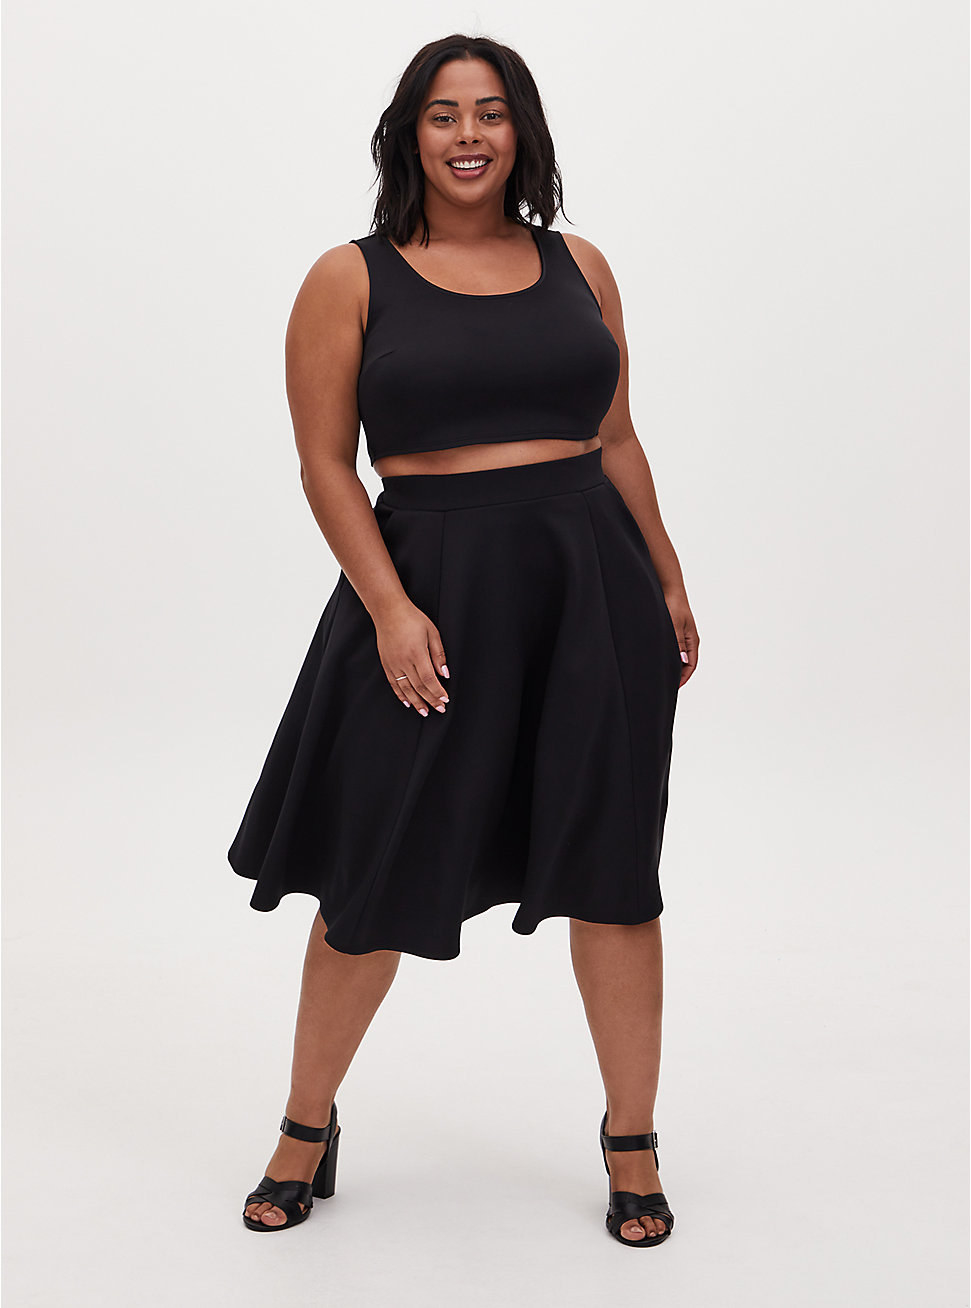 model in tight black tank crop top and black high-waisted midi skirt